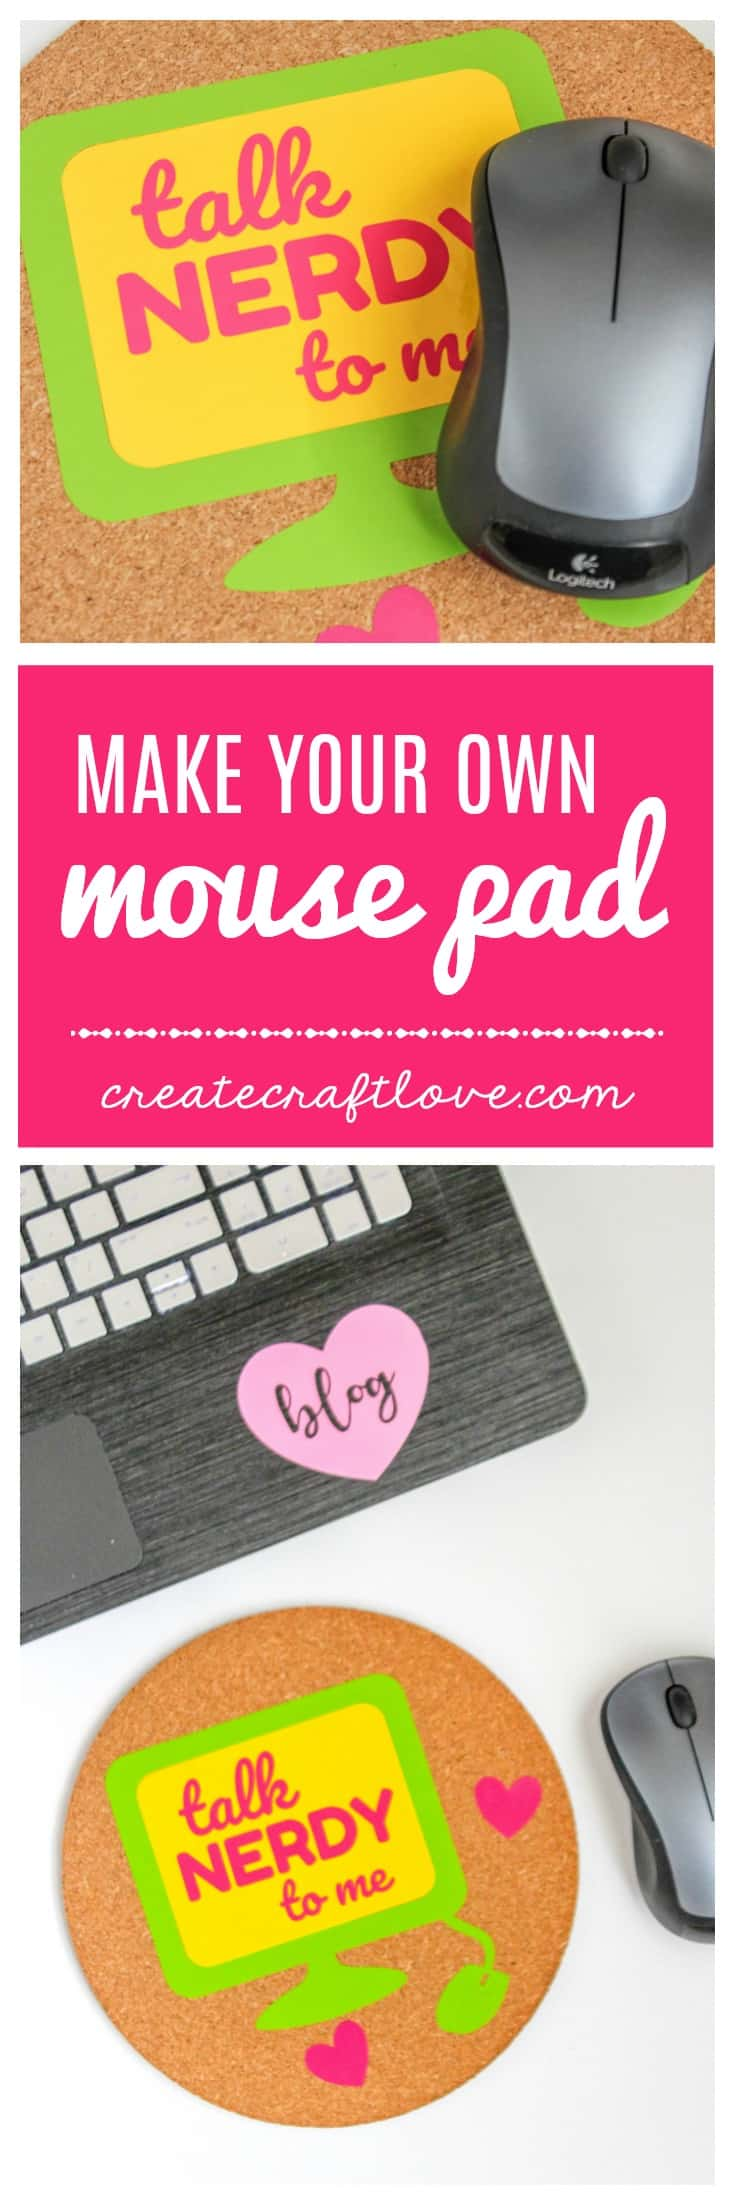 Make your own mouse pad!  All you need is a cork mat, some adhesive vinyl and my free SVG file!